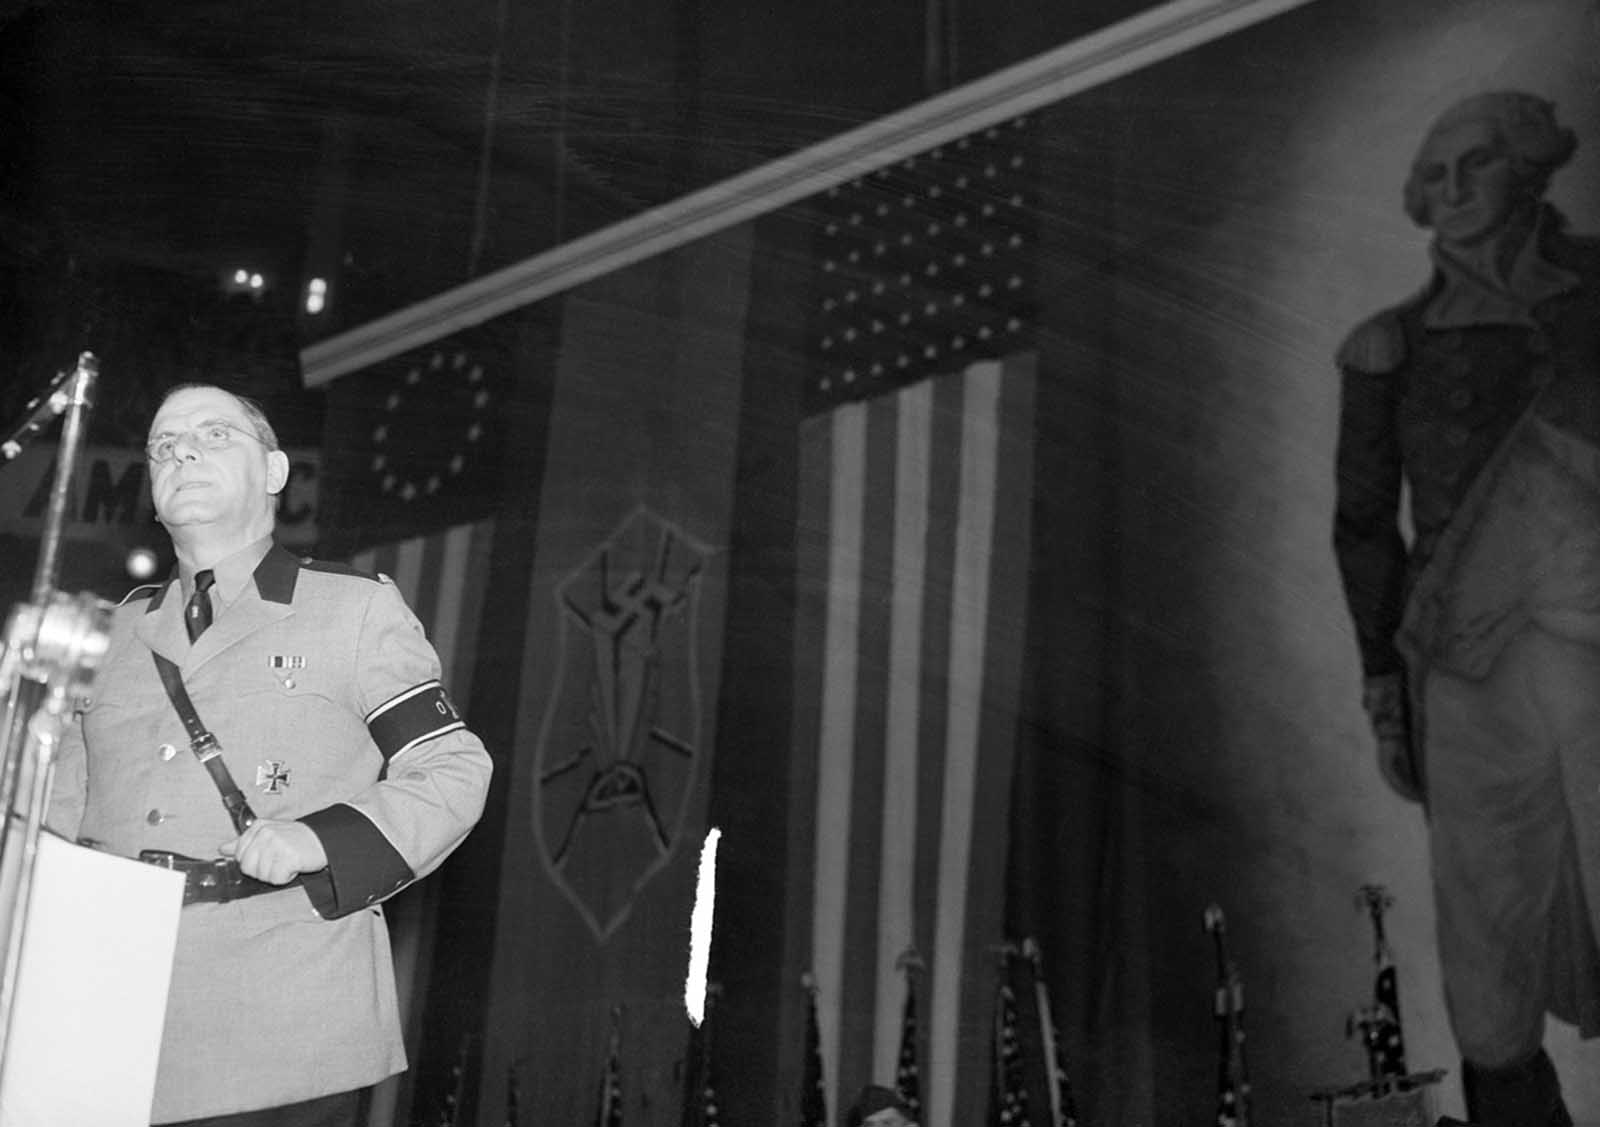 February 20, 1939. Original Caption: The local Fuehrer holds forth. Hewing to the verbal line and letting the syllables fall where they may, Fritz Kuhn, local Fuehrer, leader of the German American Bund, addresses the Bund's heavily guarded